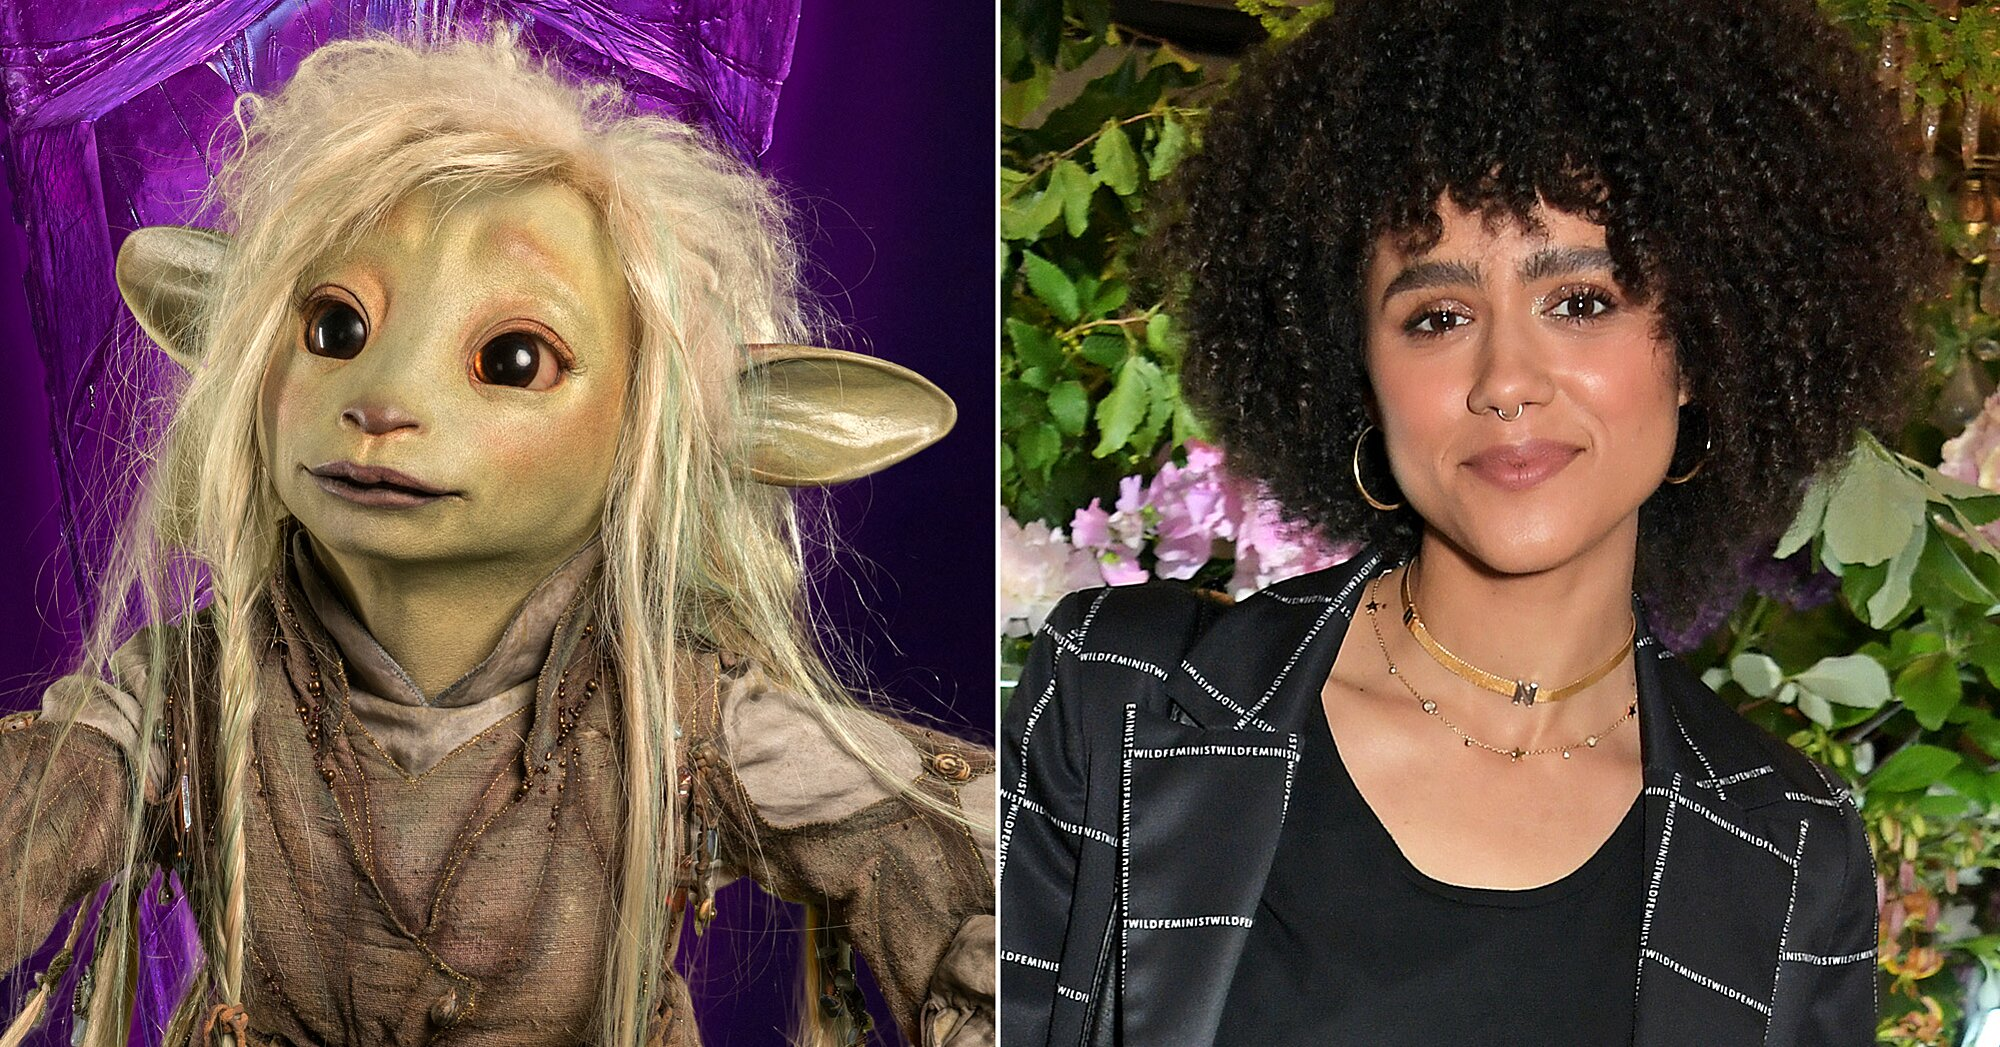 The 5 most interesting performances in 'The Dark Crystal: Age of Resistance'